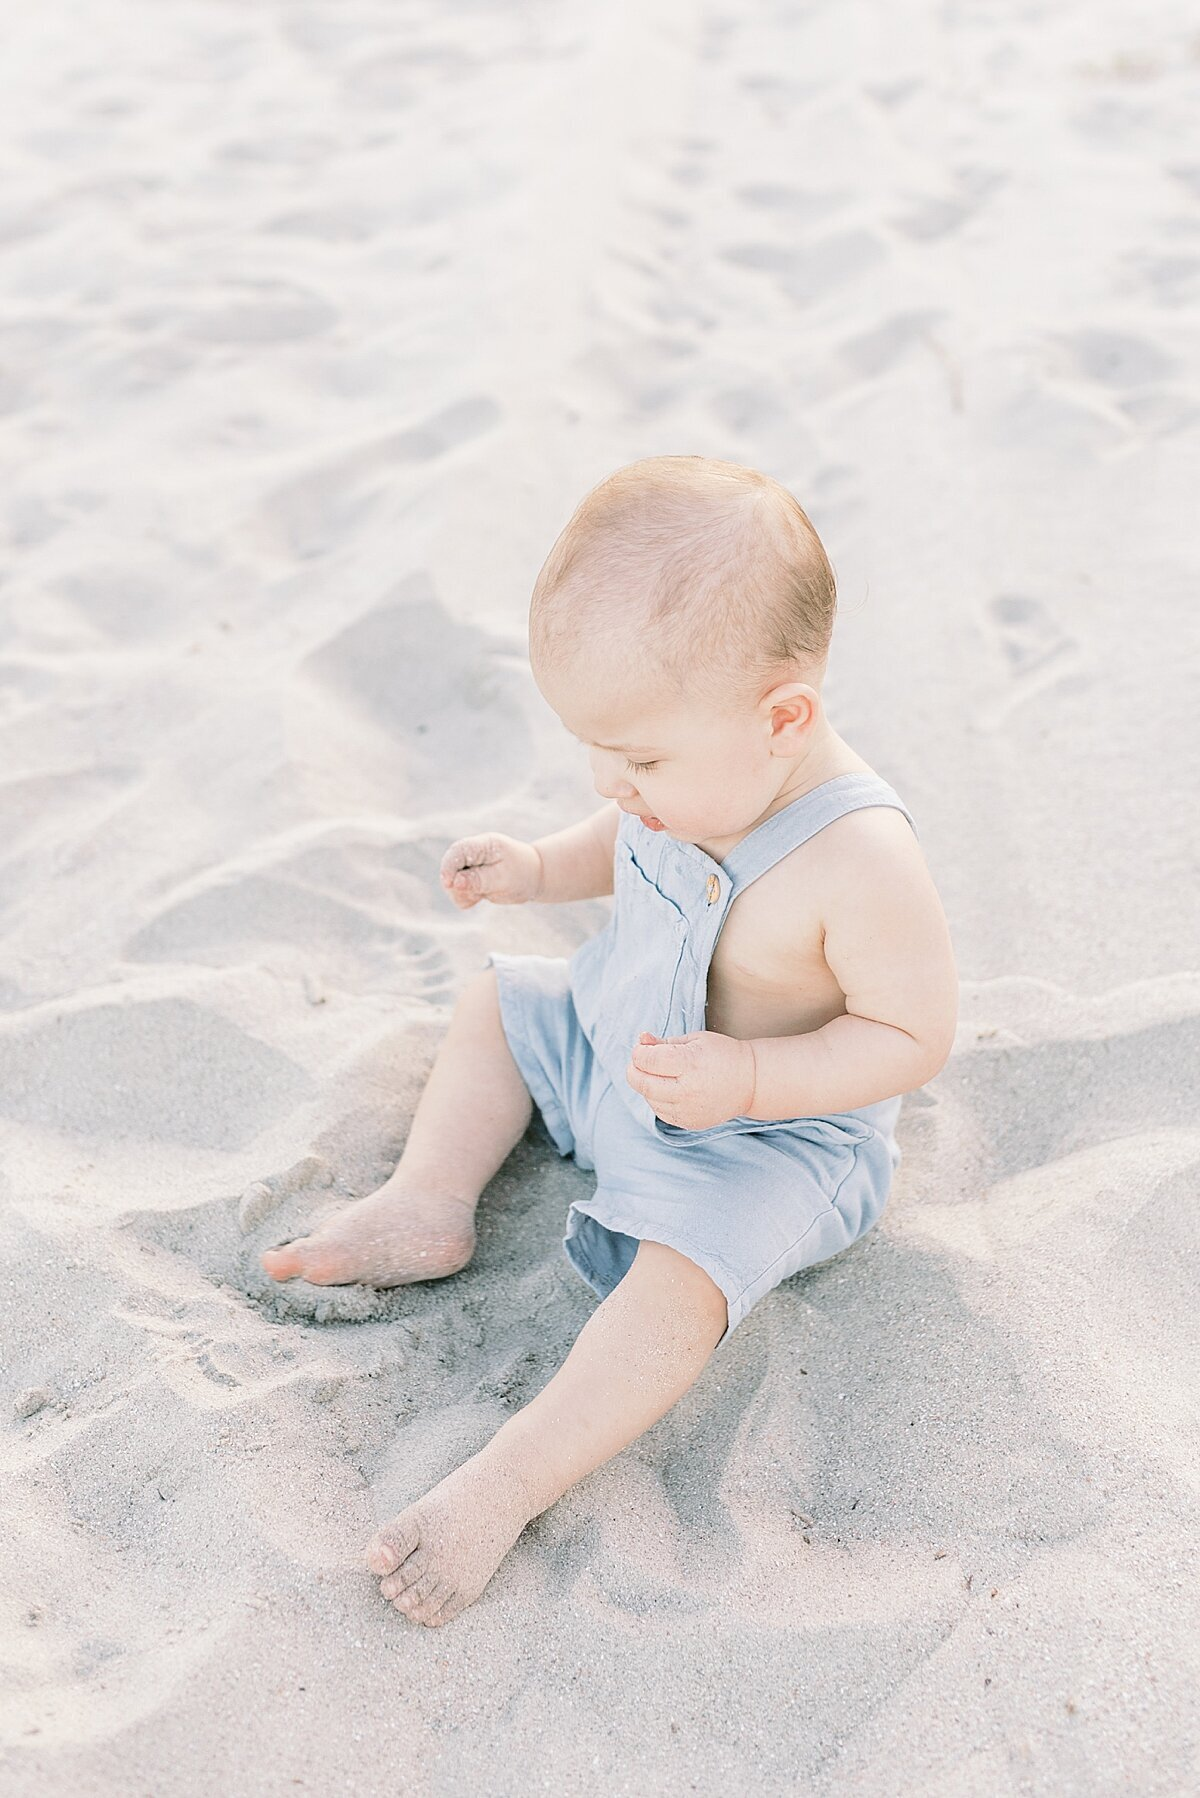 First-birthday-photoshoot-Isle-of-Palms-caitlyn-motycka-photography_0010